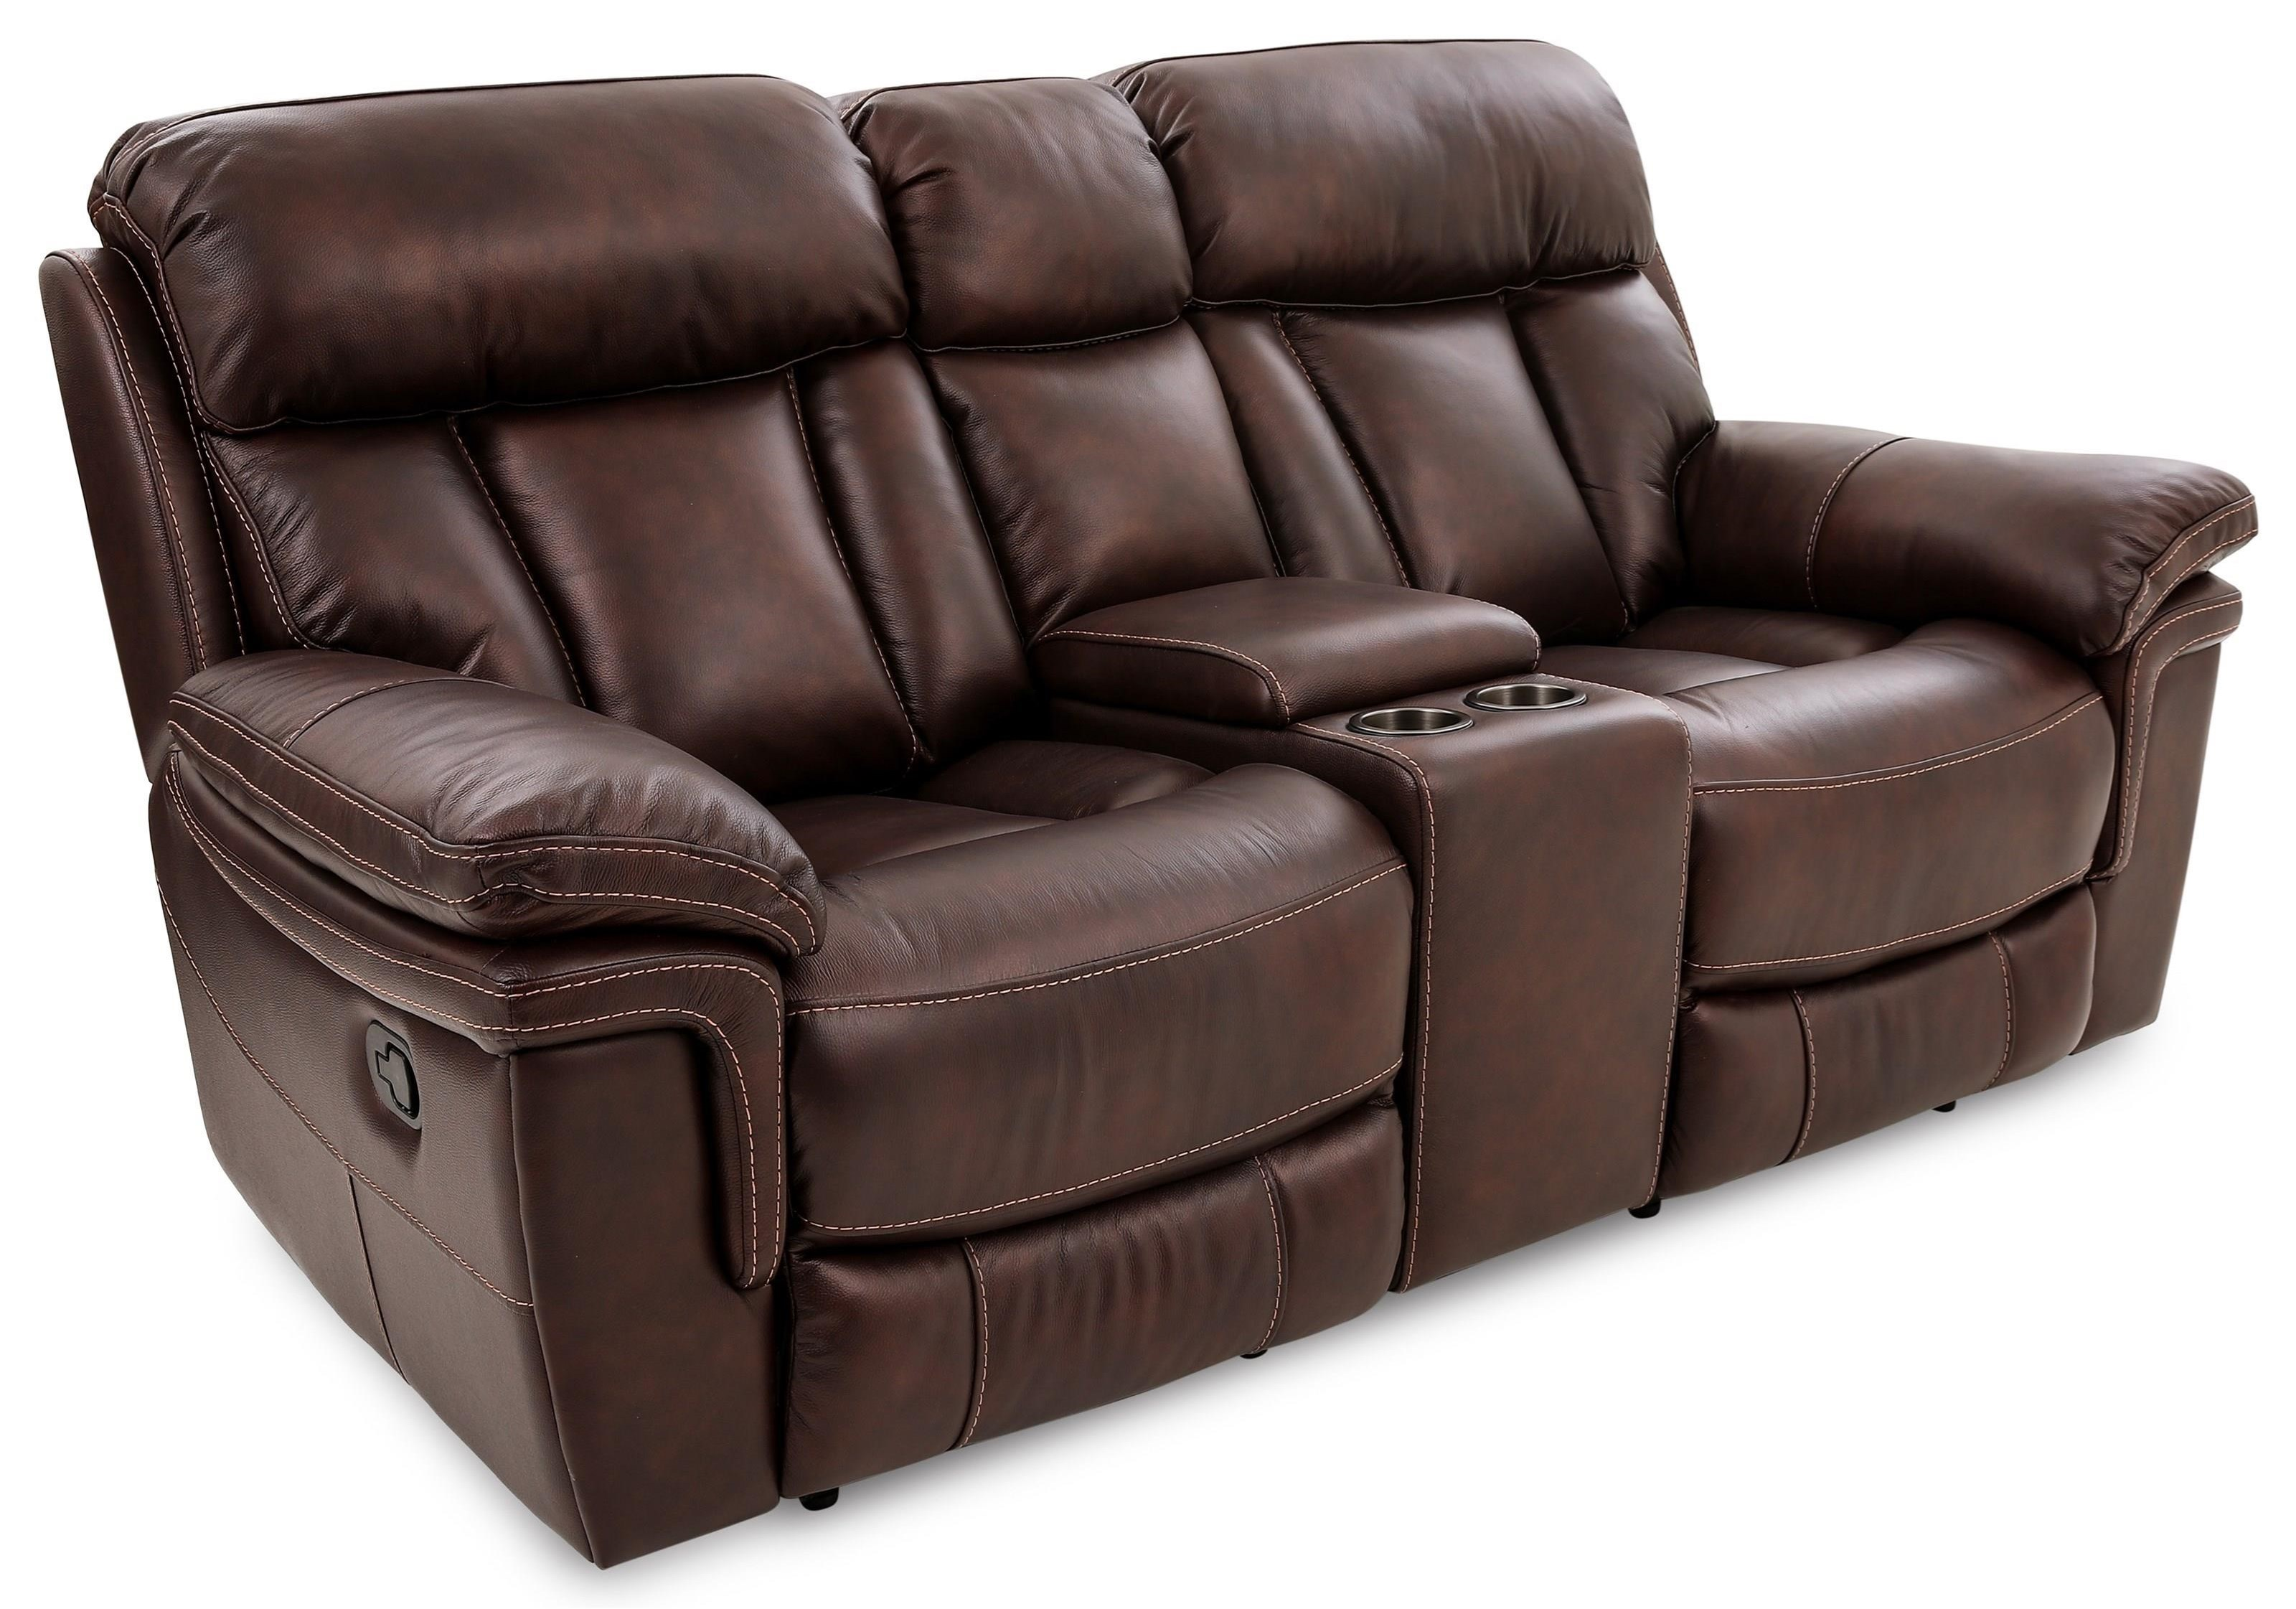 Bryant LEATHER RECLINING LOVESEAT W/CONSOLE at Walker's Furniture